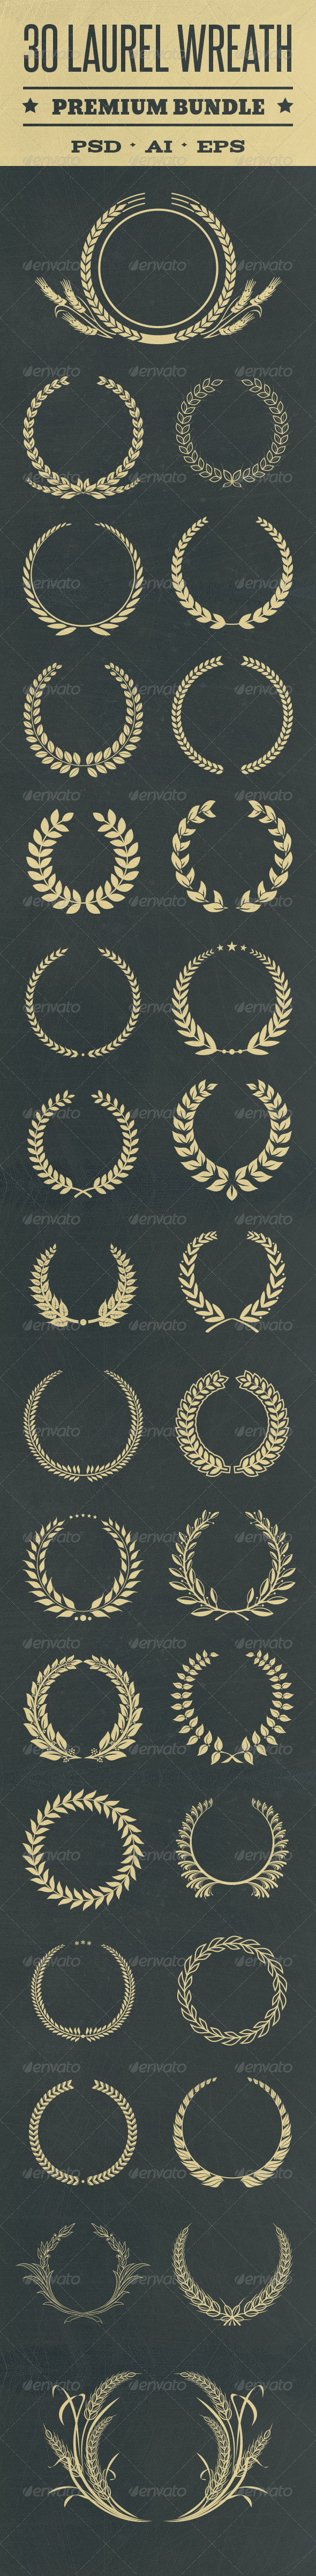 30 Laurel Wreath